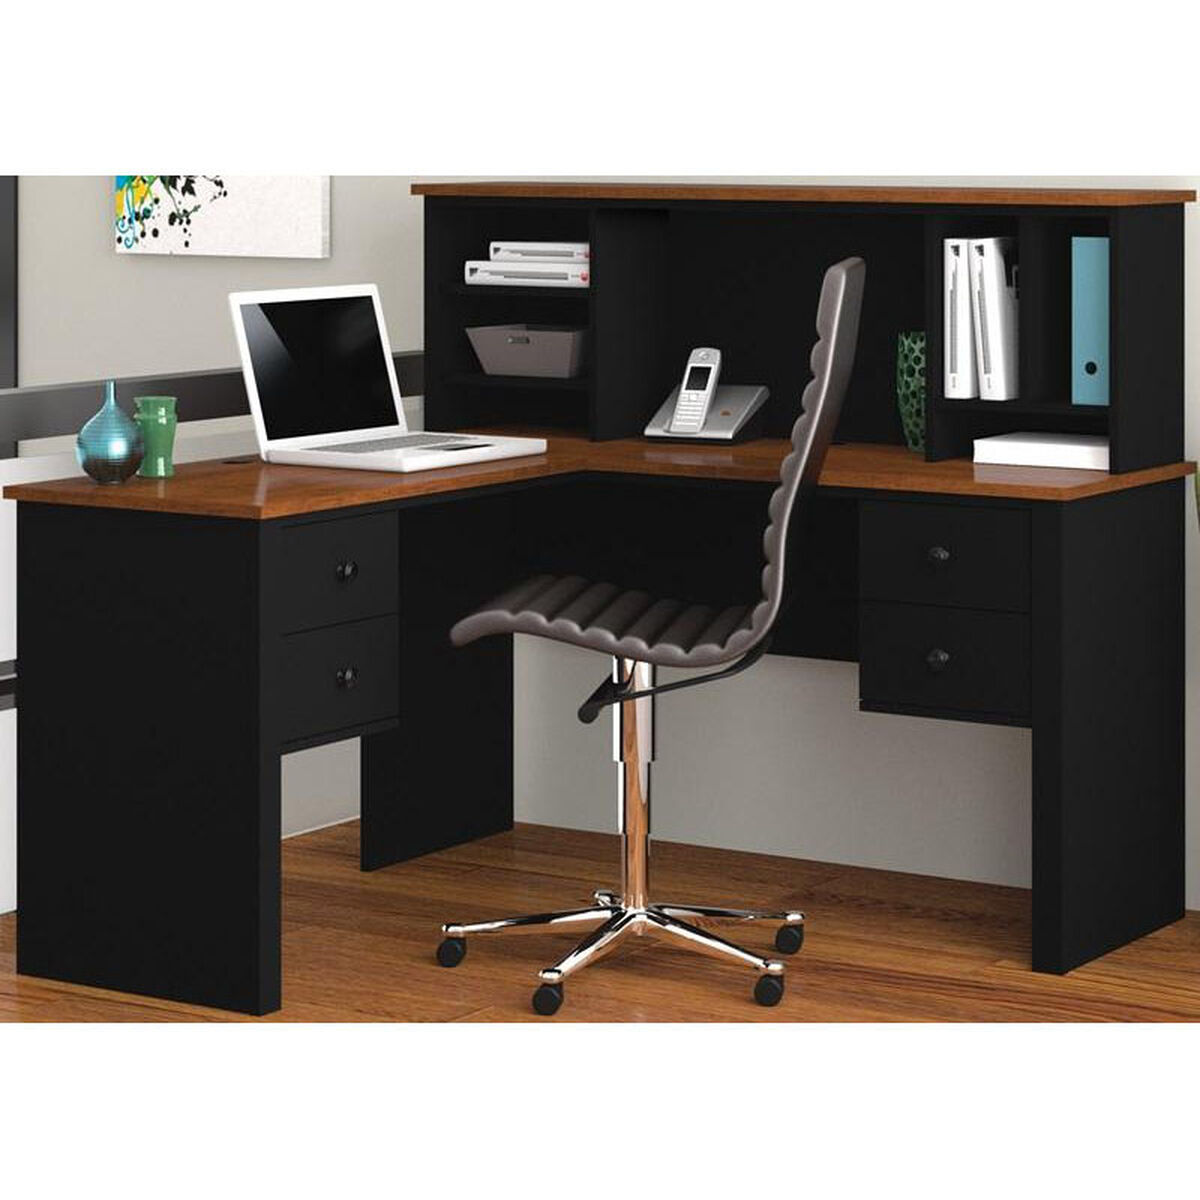 L Shaped Desk Set 45850 18 Bizchair Com